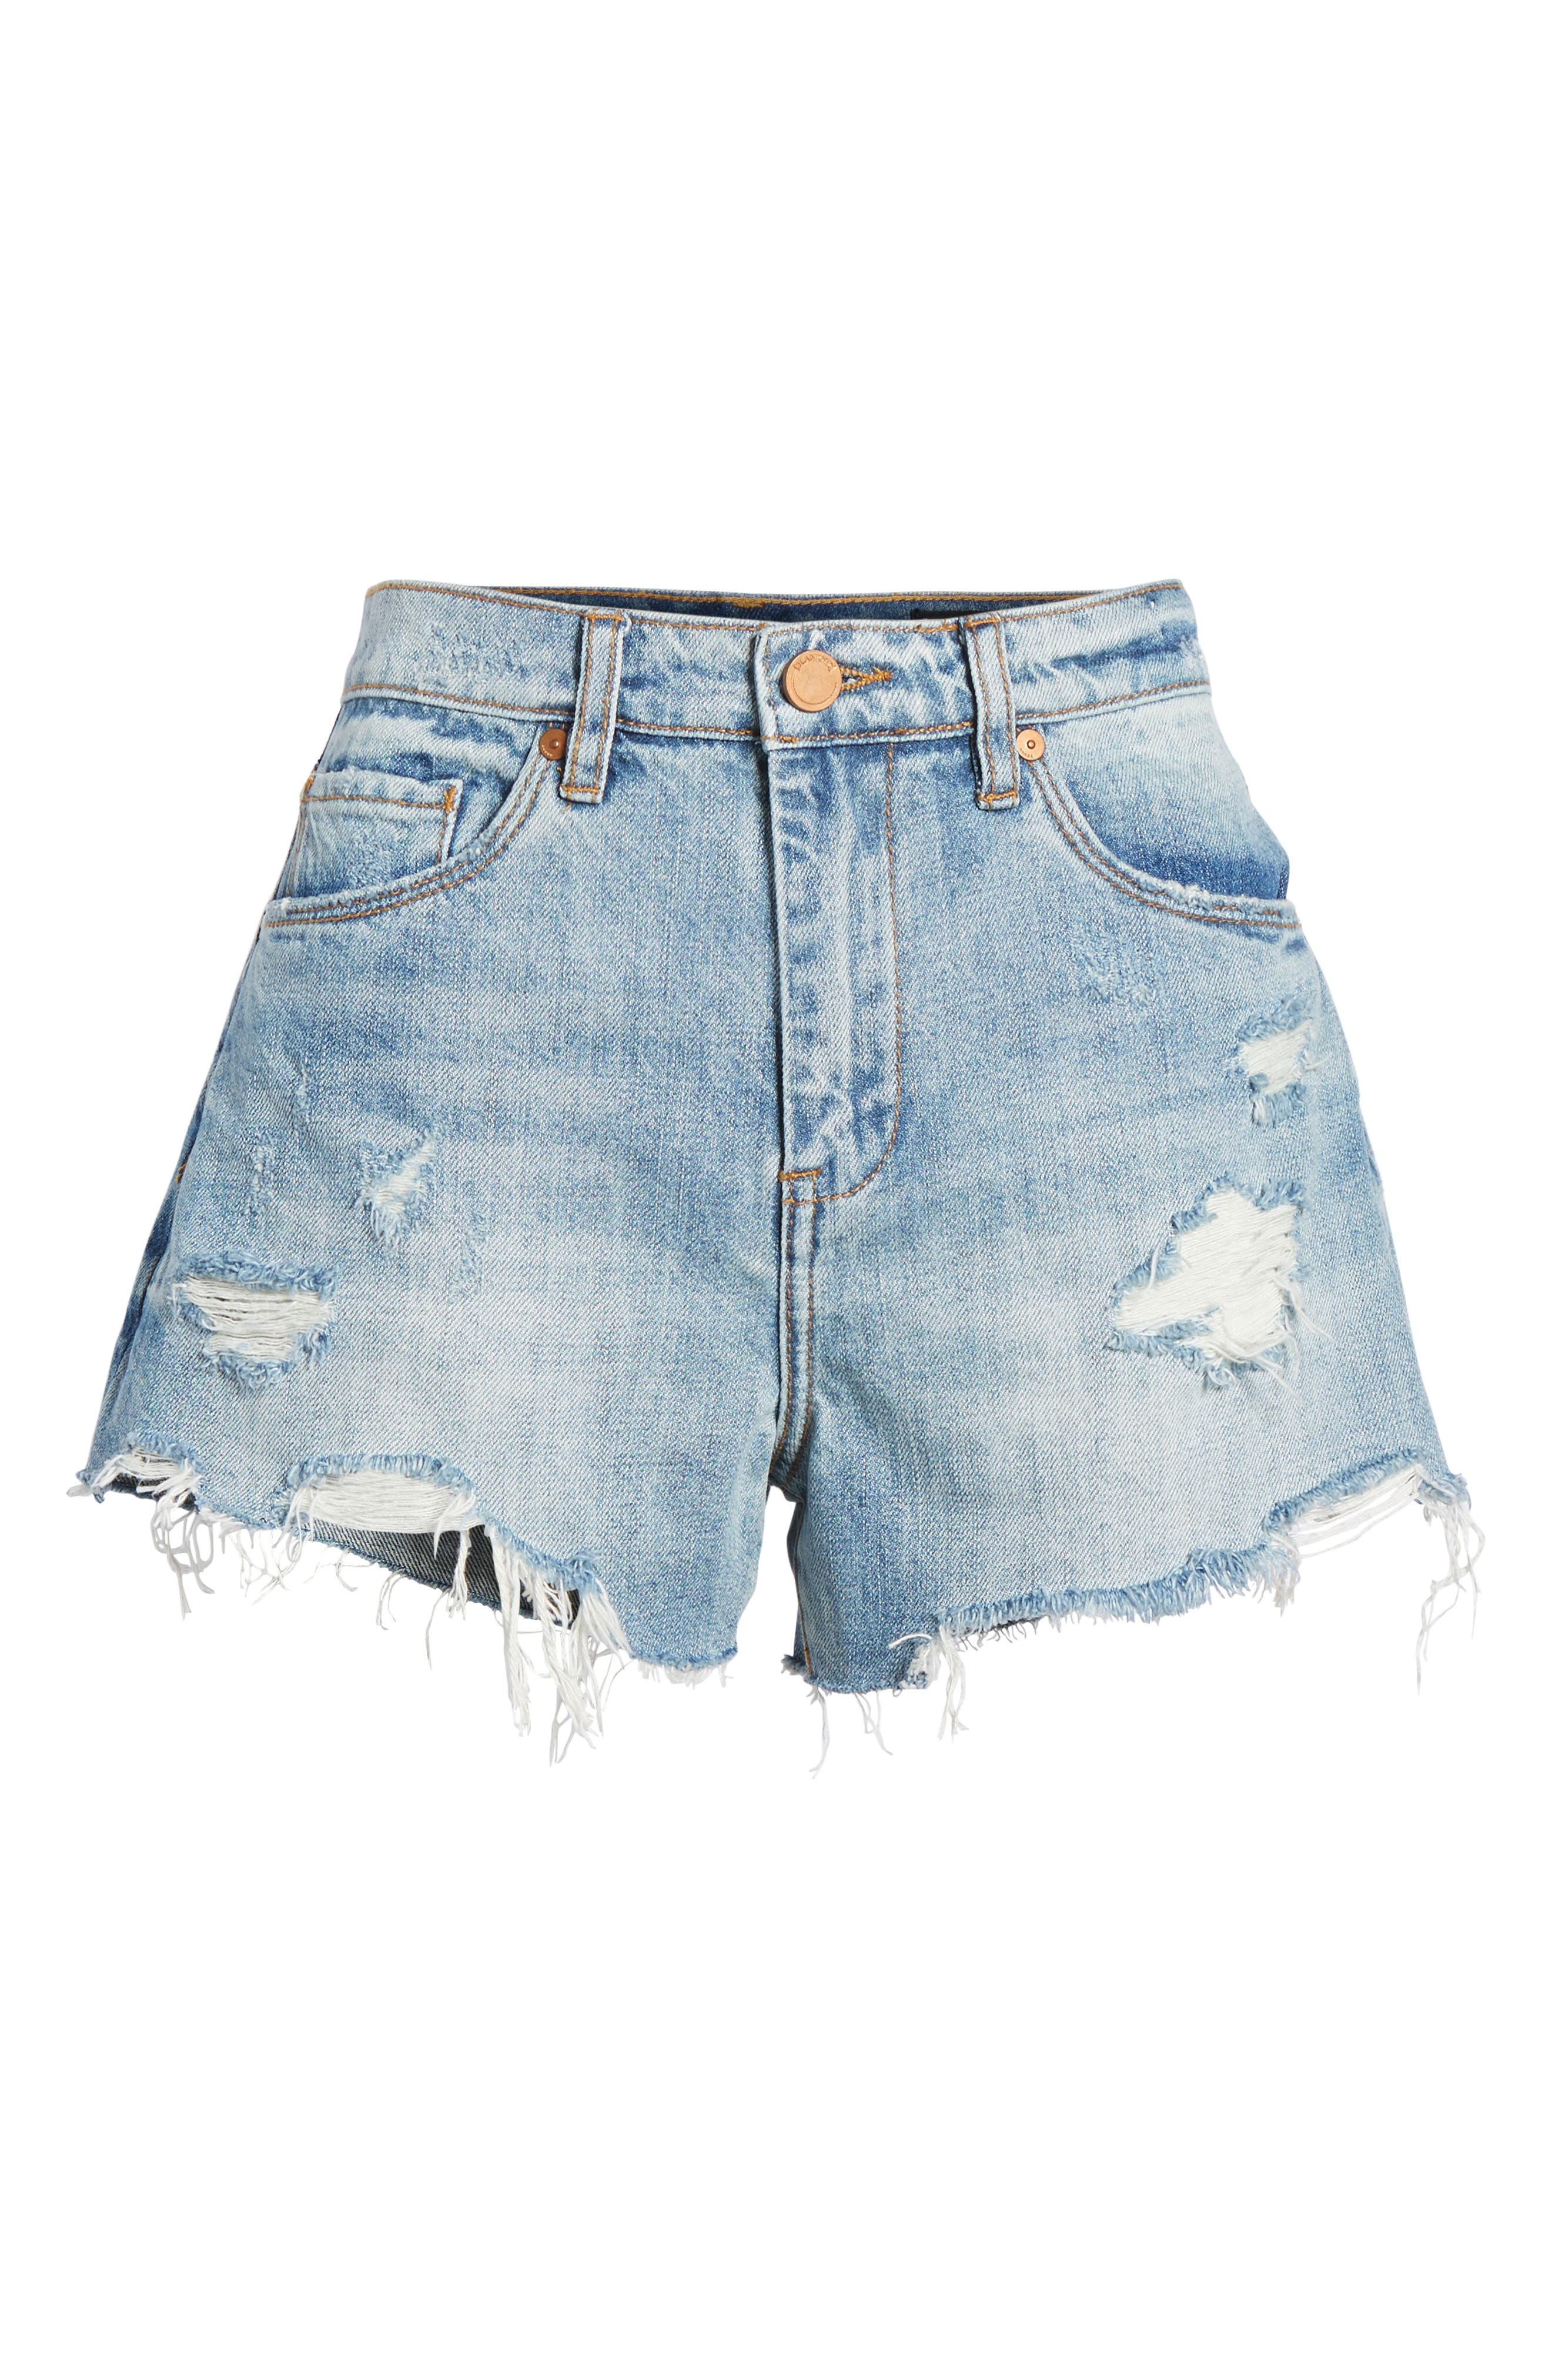 Panic Prevention Ripped Cutoff Denim Shorts,                             Alternate thumbnail 6, color,                             400